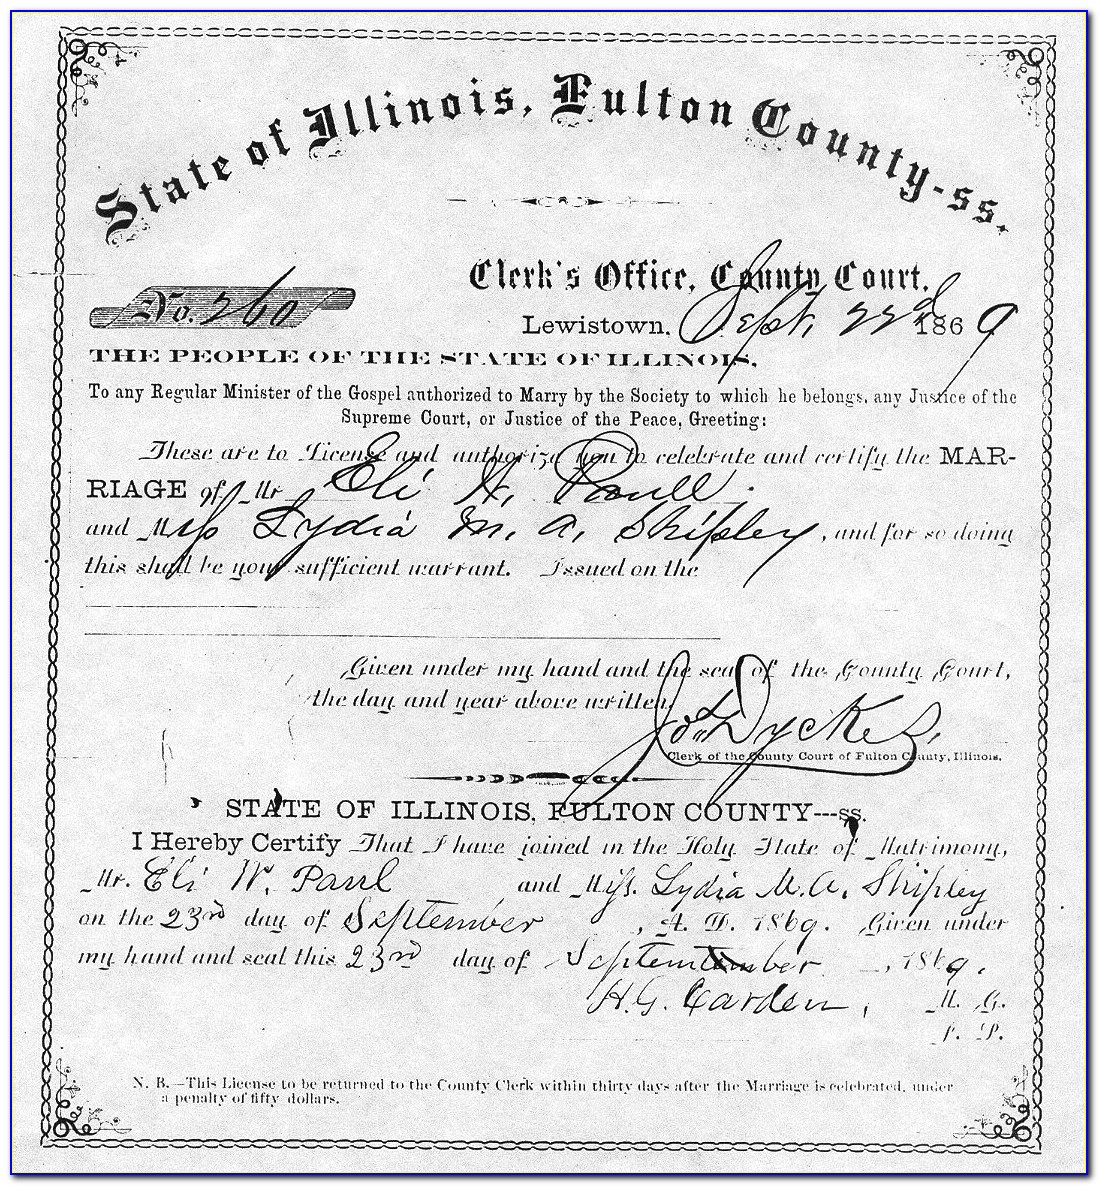 Fulton County Marriage Certificate